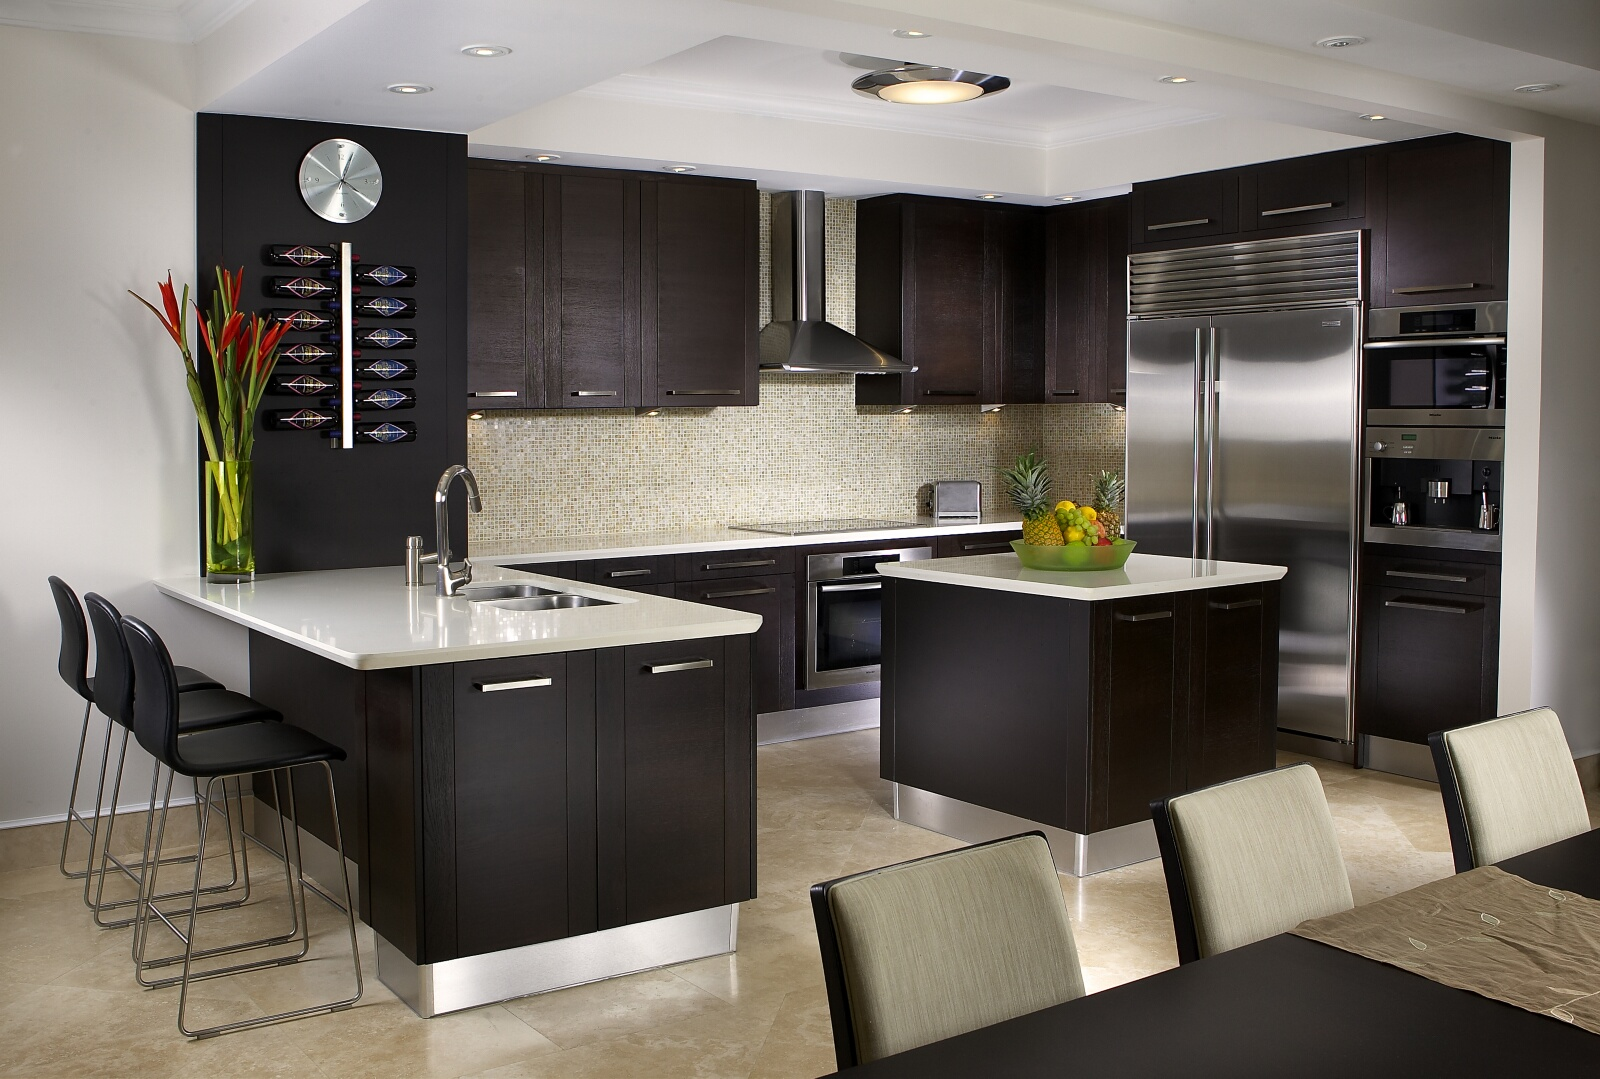 Kitchen interior design services miami florida for Kitchens by design